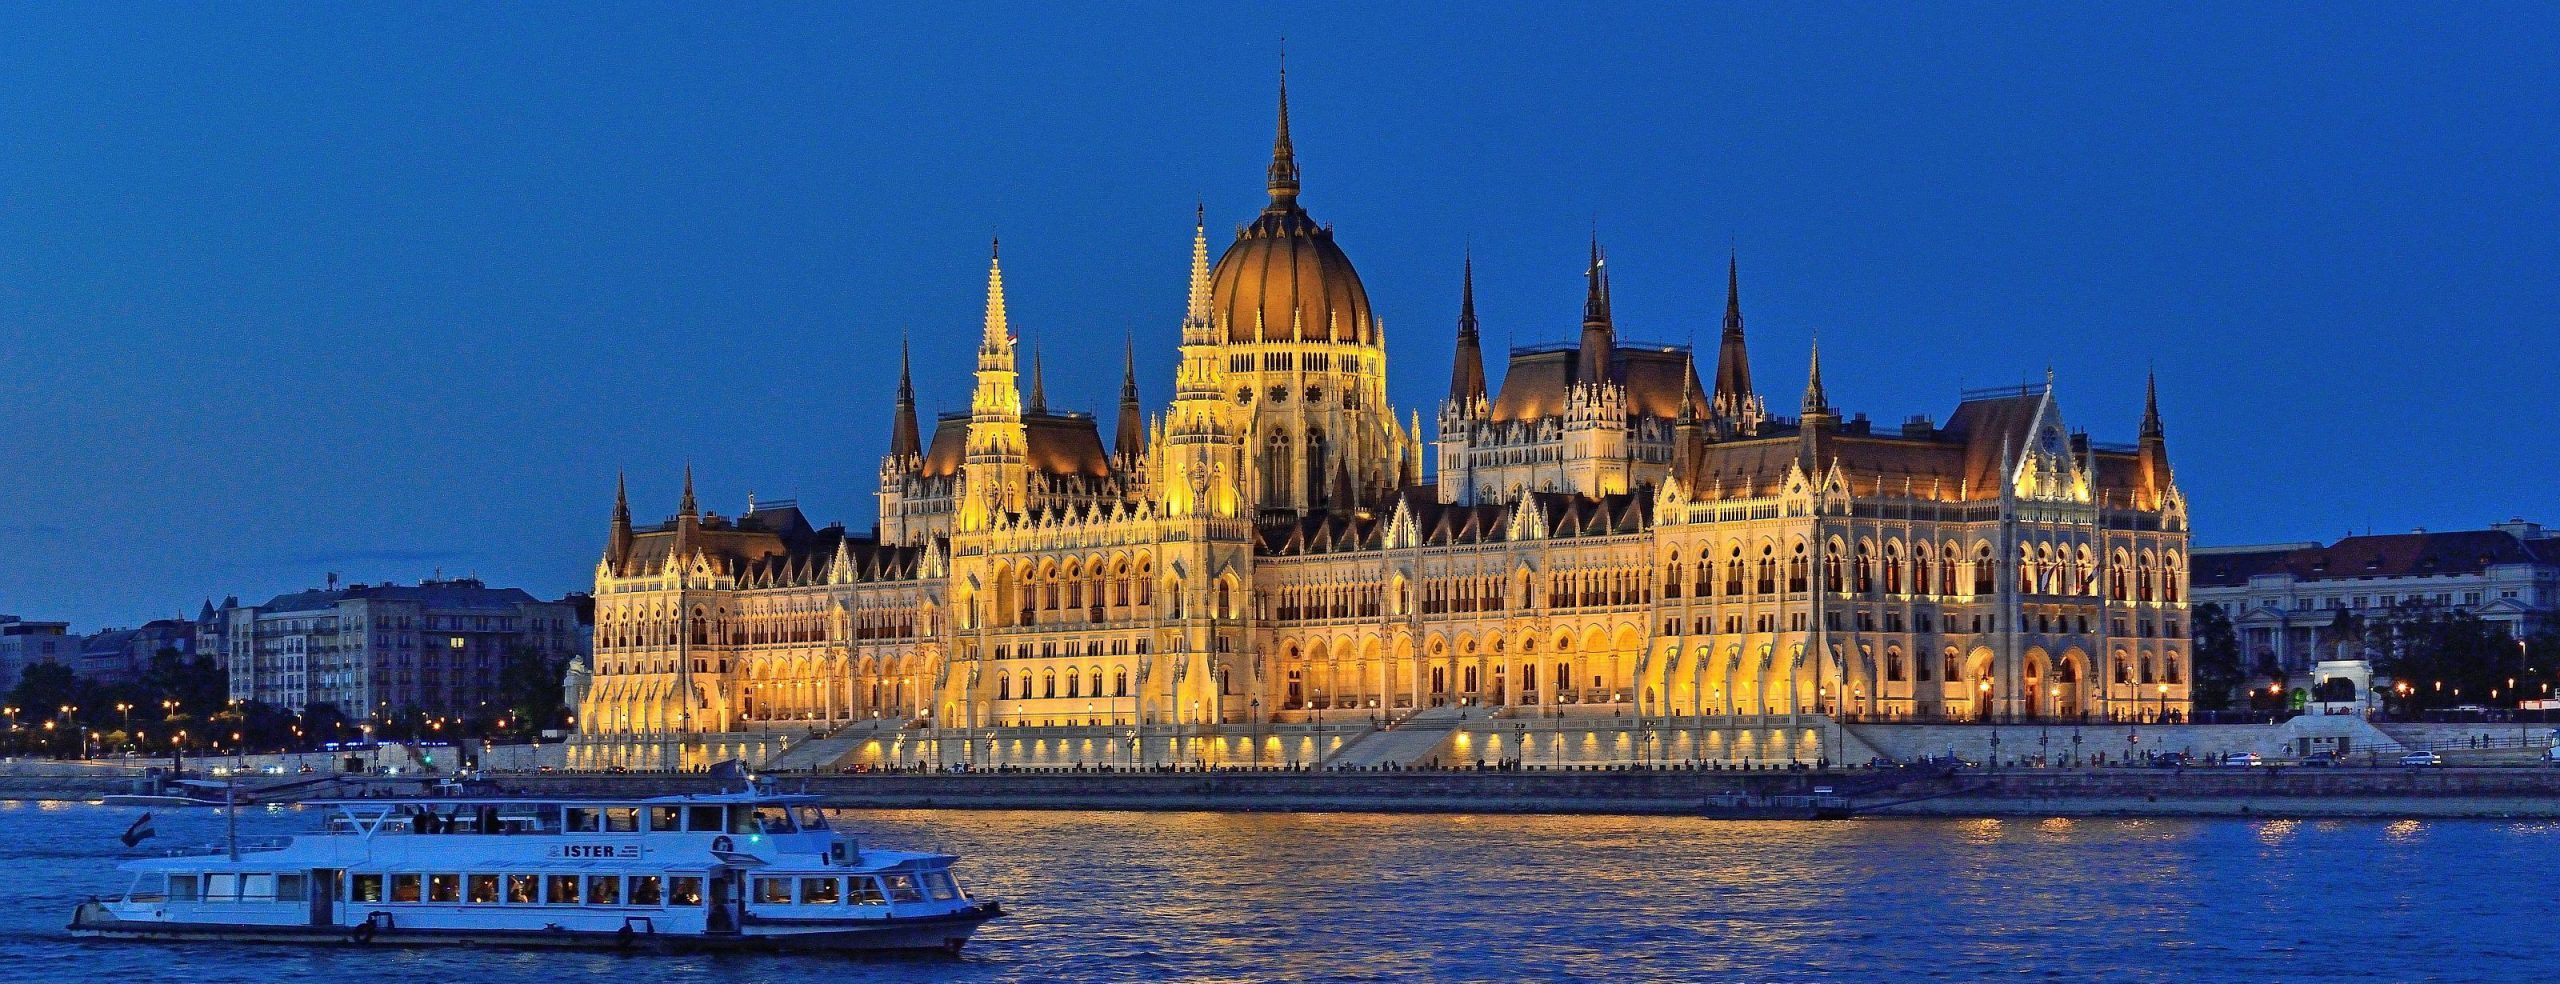 budapest parliament from danube by night Panorama Small